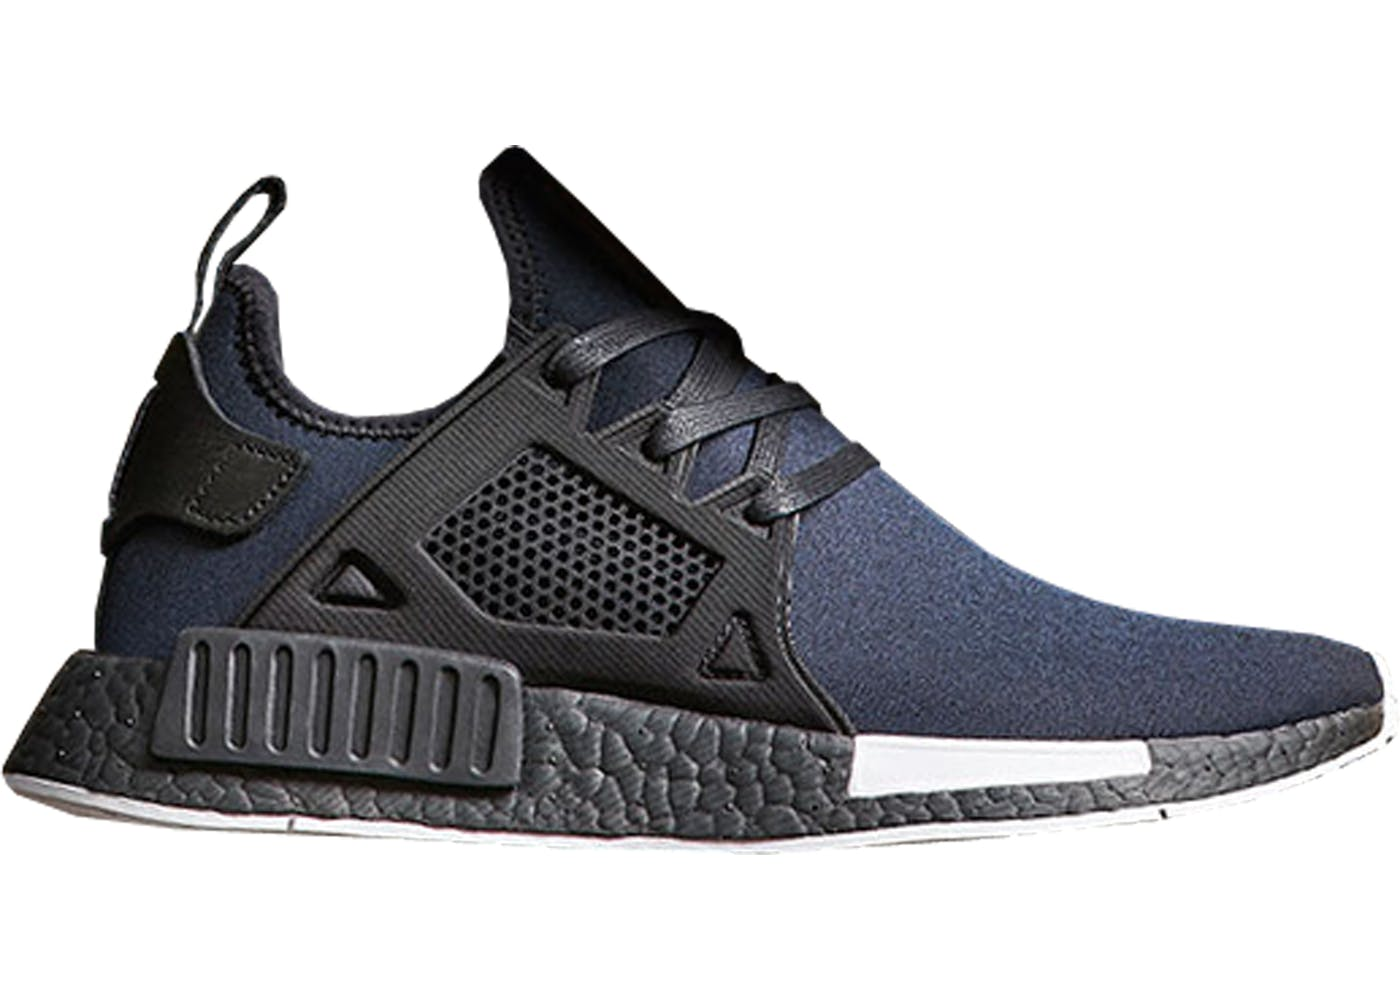 ADIDAS NMD XR1 BLUE BIRD BLACK FRIDAY Sz 7 13